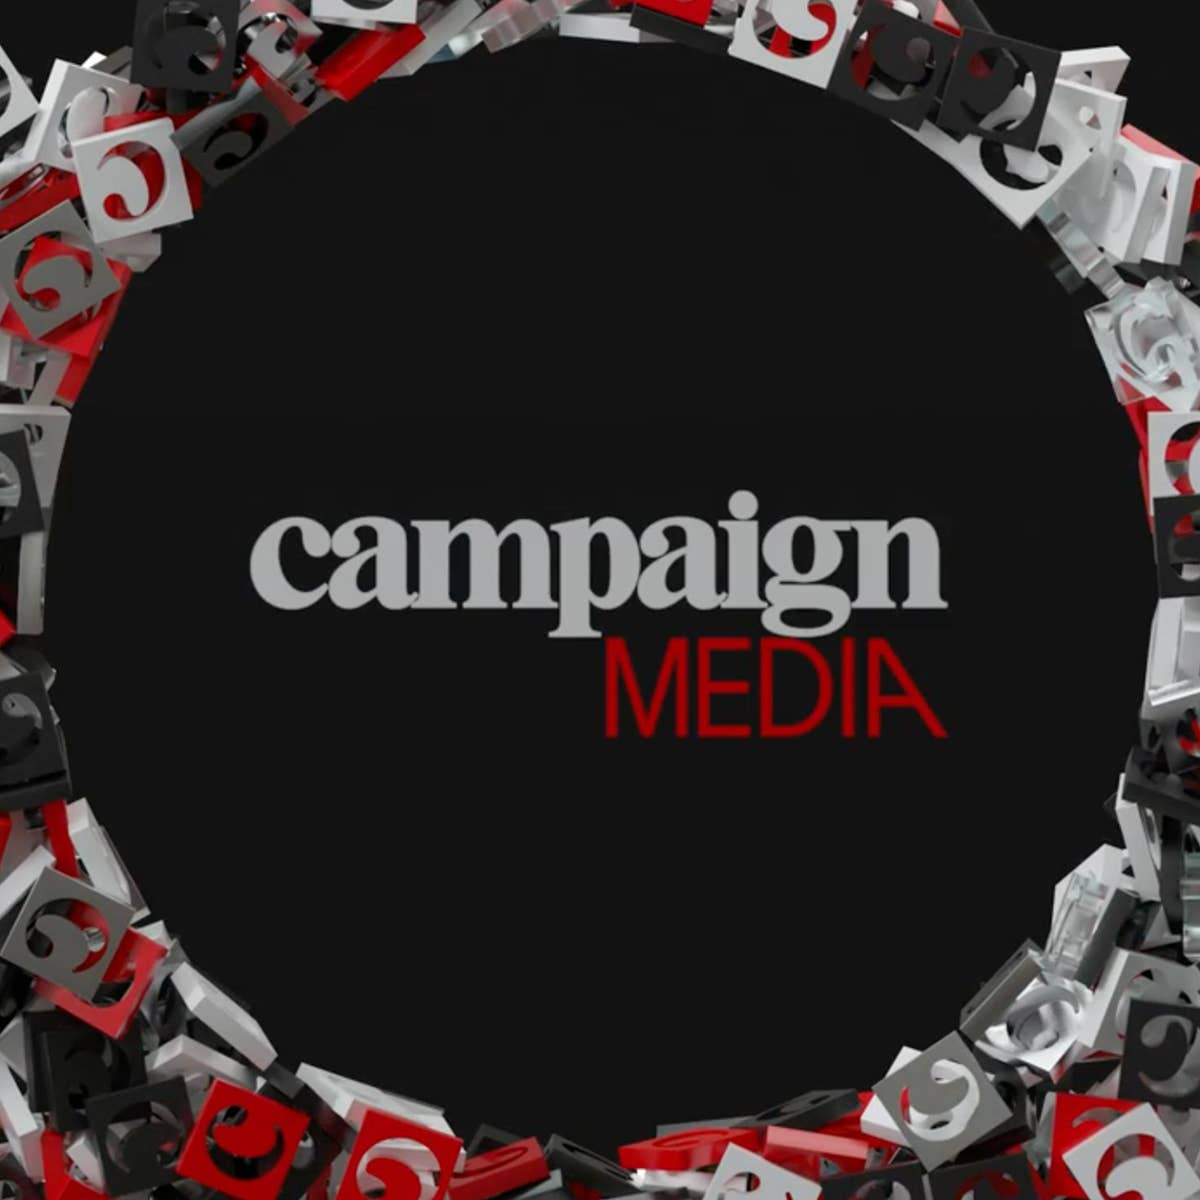 Co-op, Co-op Funeralcare, Vodafone And Mondelēz bag 14 shortlists at the 2021 Campaign Media Awards